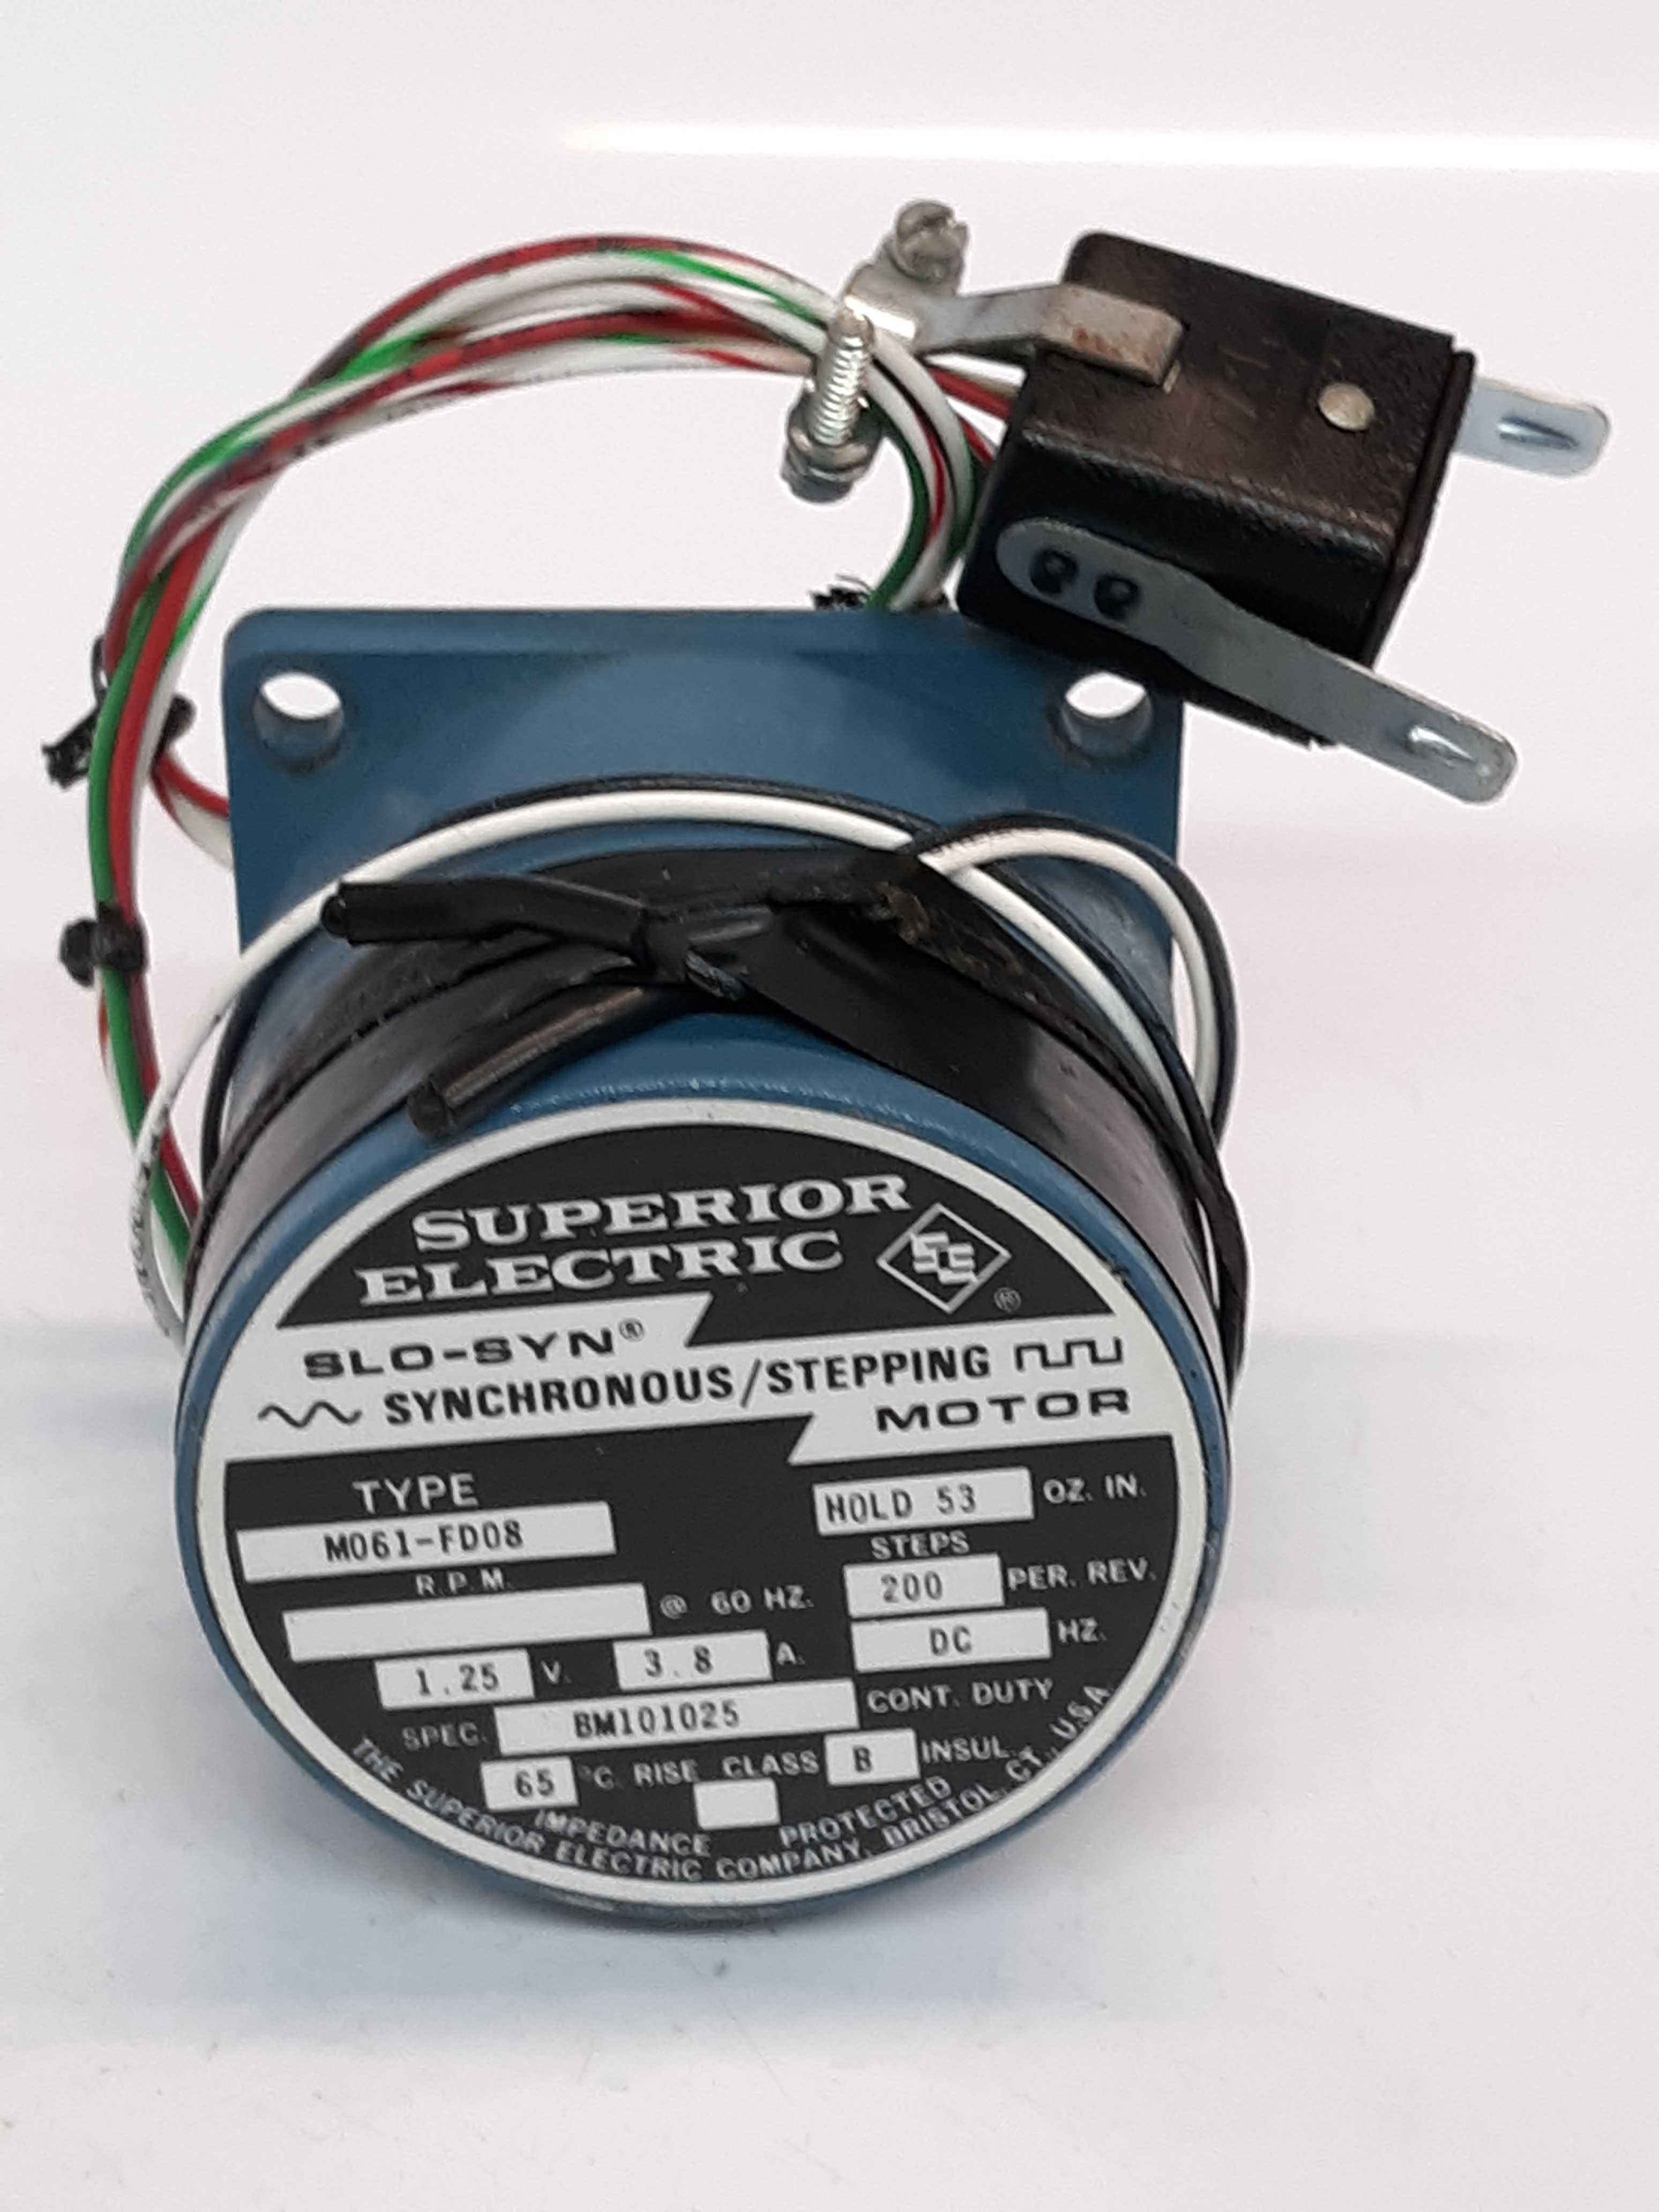 Superior Electric M061-FD08 Slo-Syn Synchronous/Stepping Motor